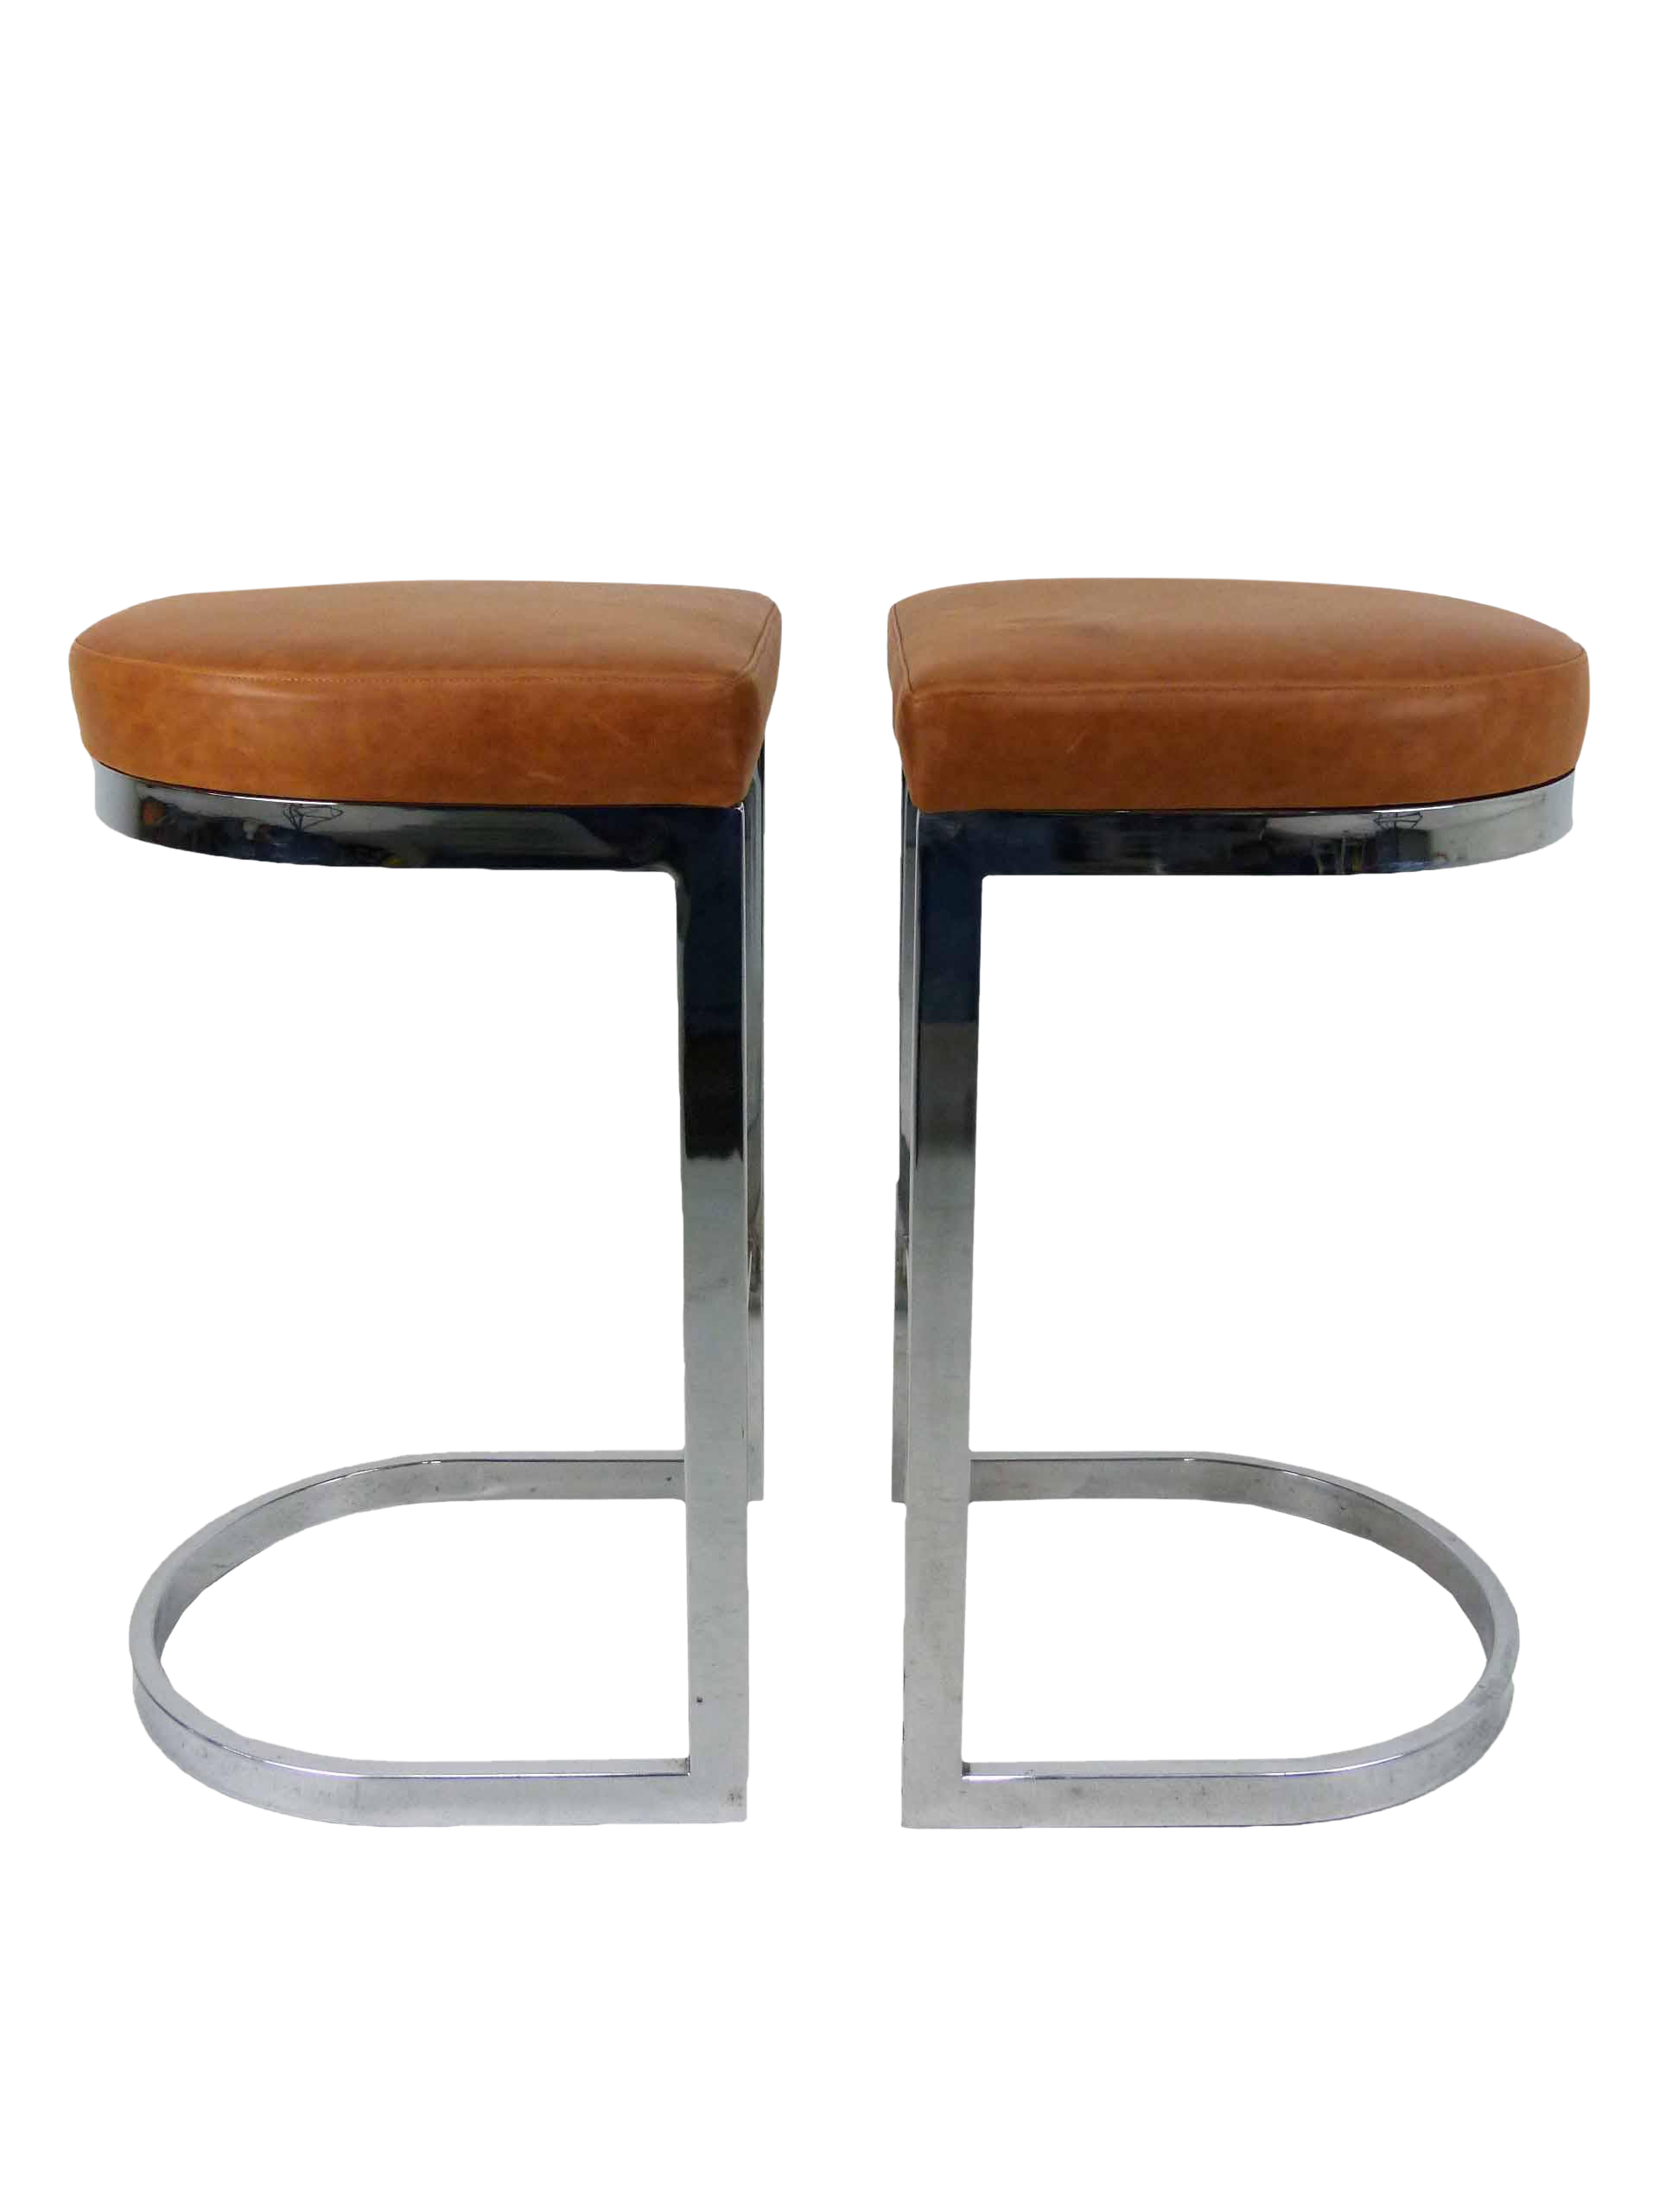 Milo Baughman Style Flat Bar Chrome Cantilever Bar Stools - A Pair  sc 1 st  Chairish : chrome and leather bar stools - islam-shia.org